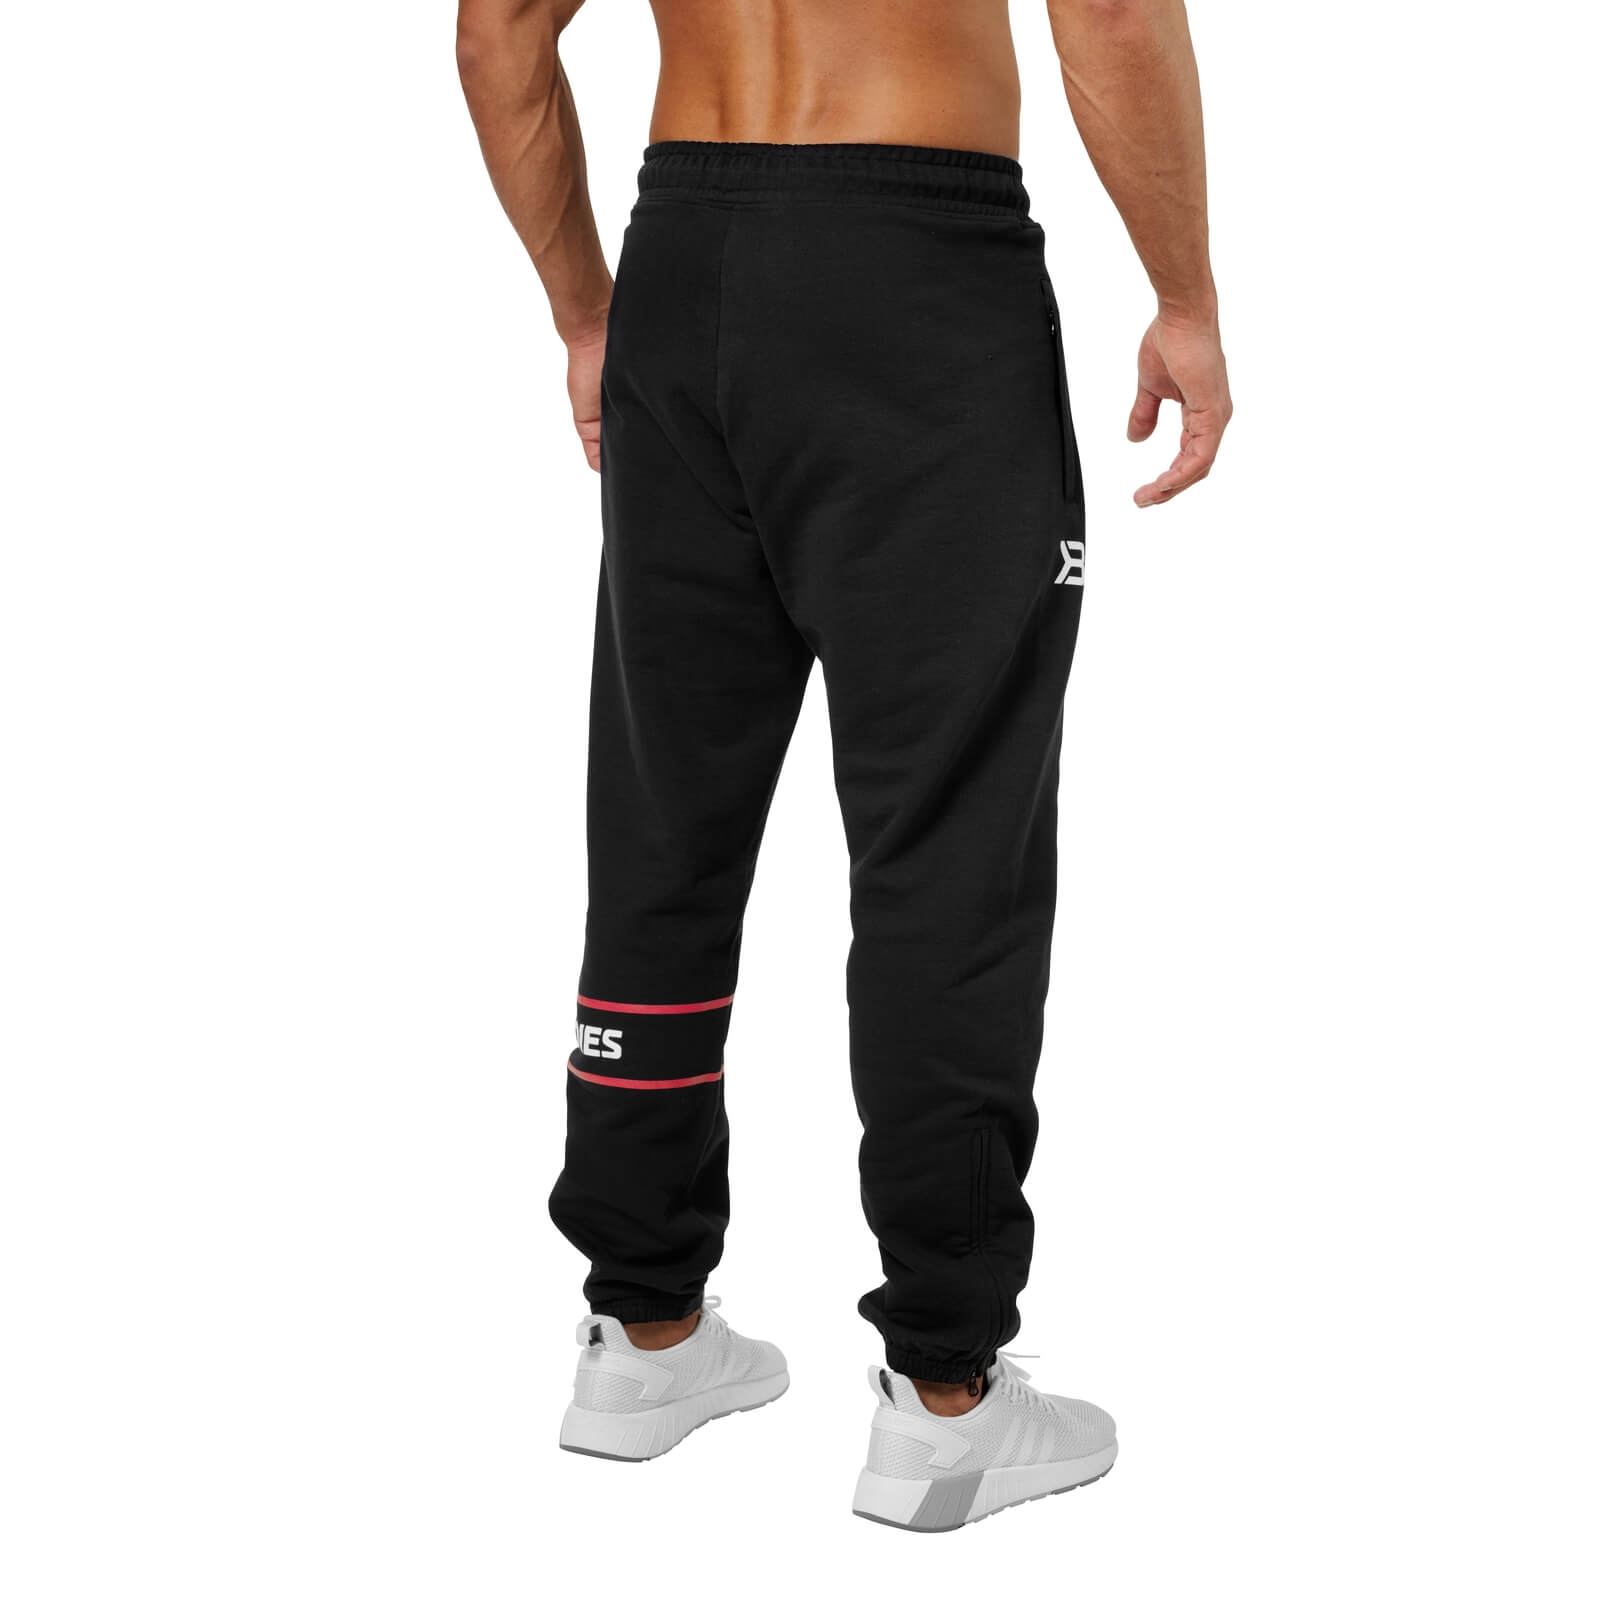 Kjøp Highbridge Sweats, black, Better Bodies online hos